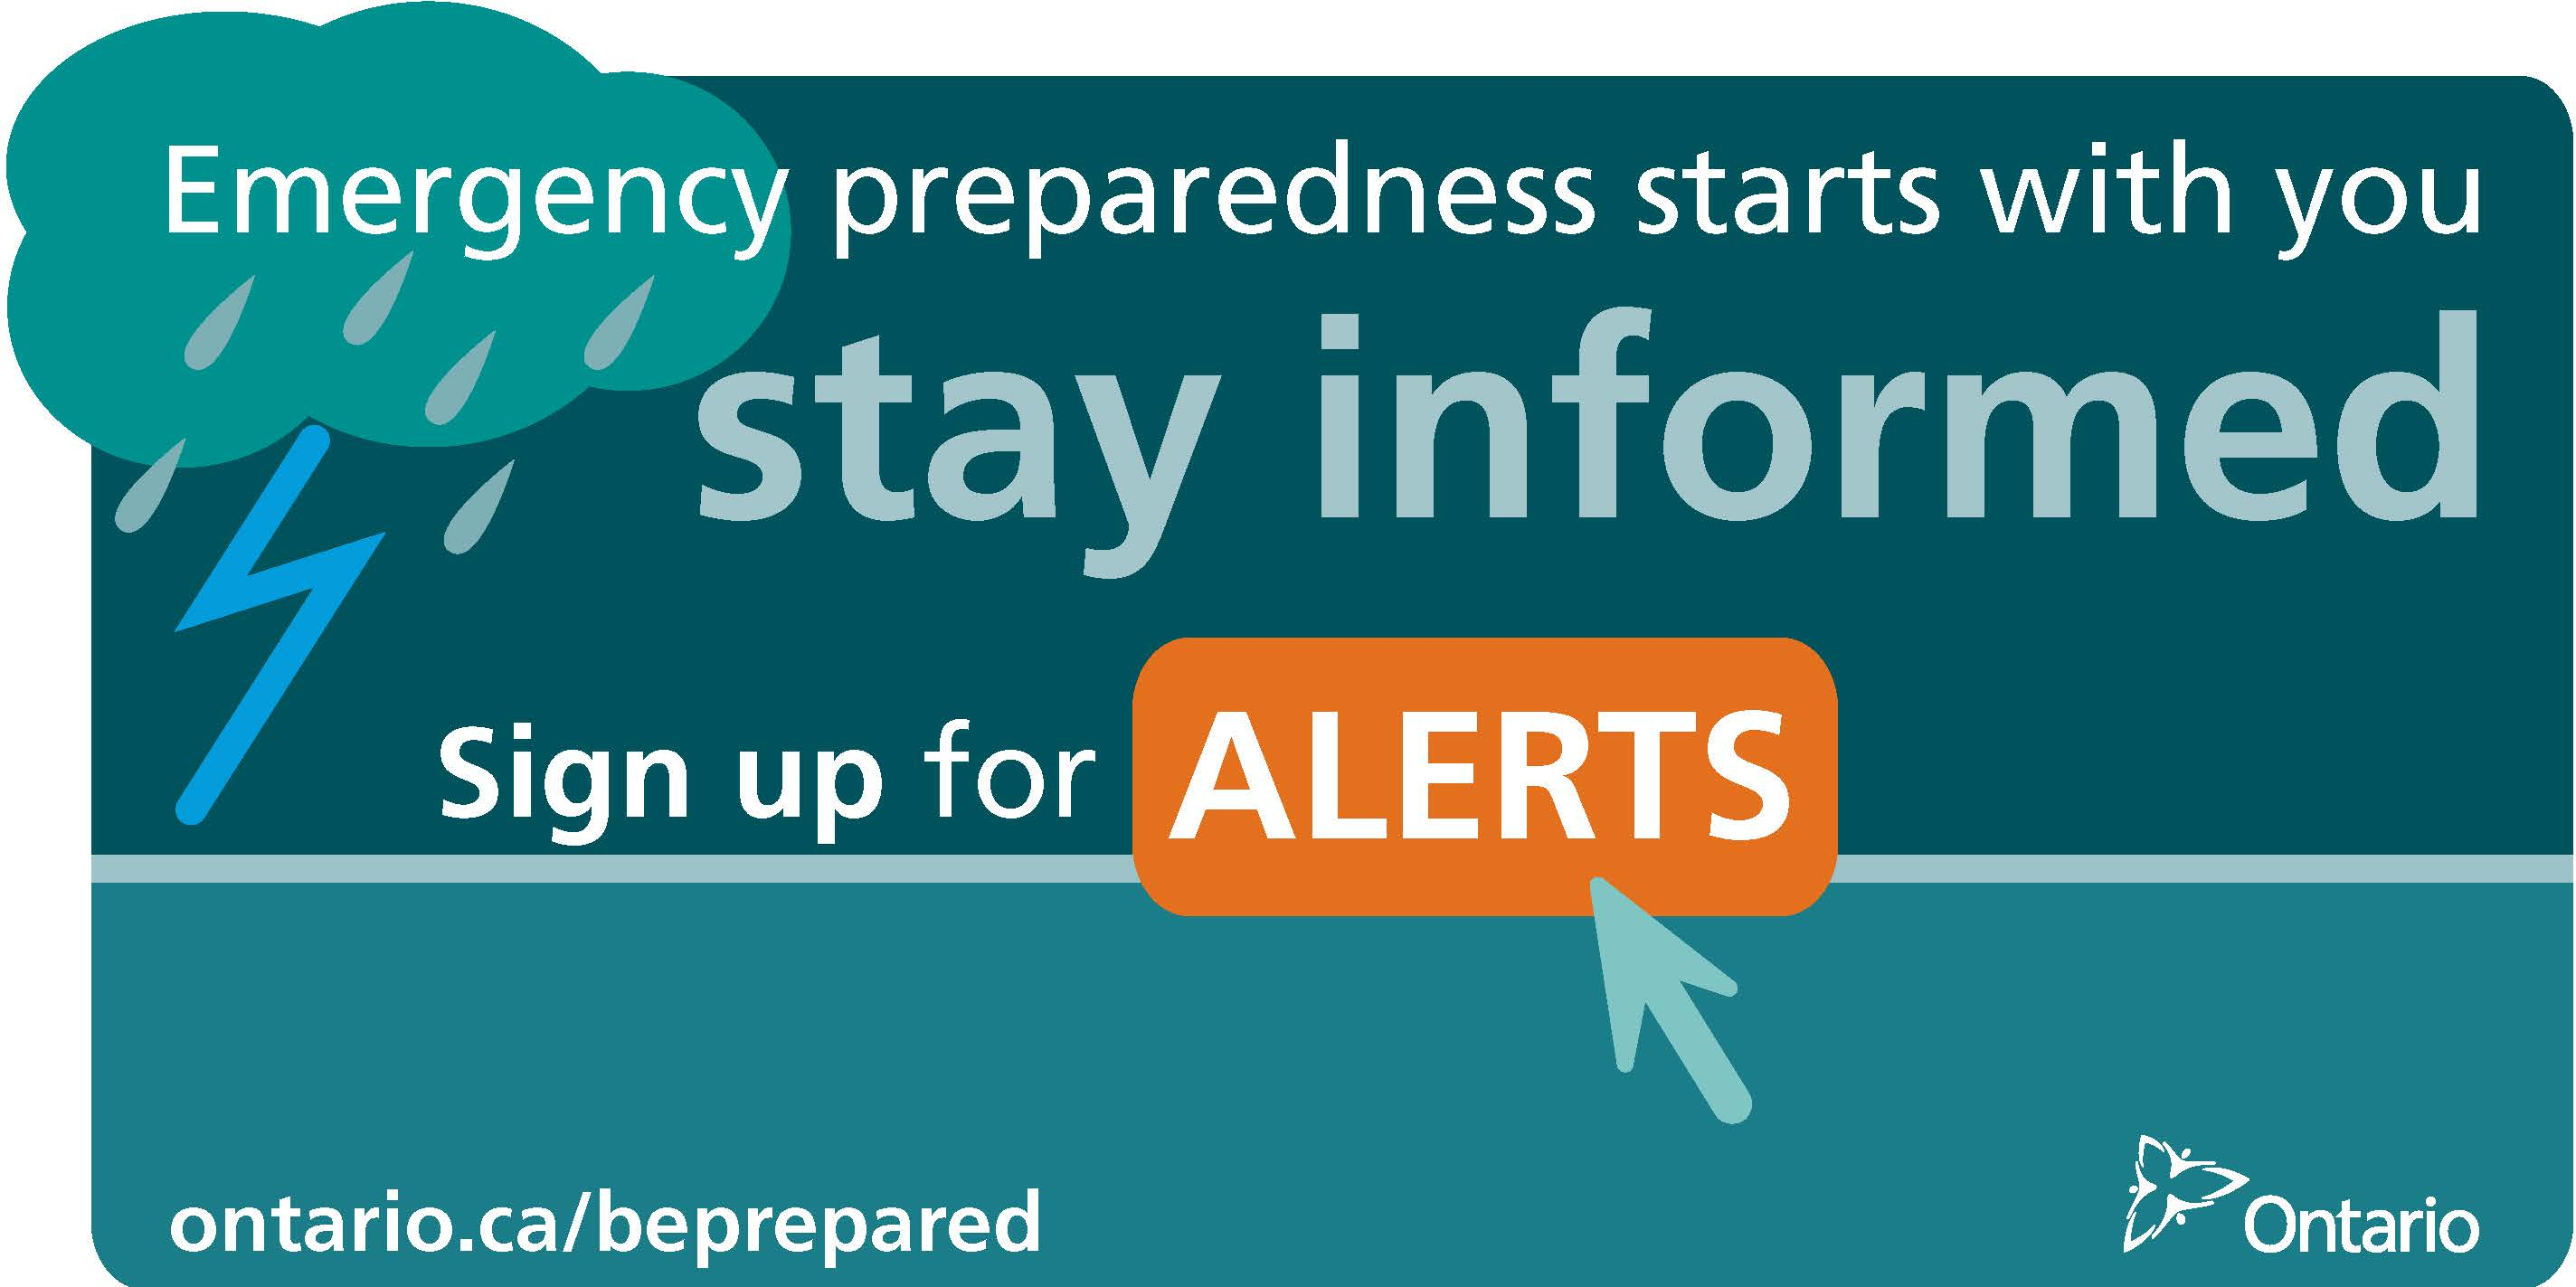 Image showing the website to visit for Emergency Alerts